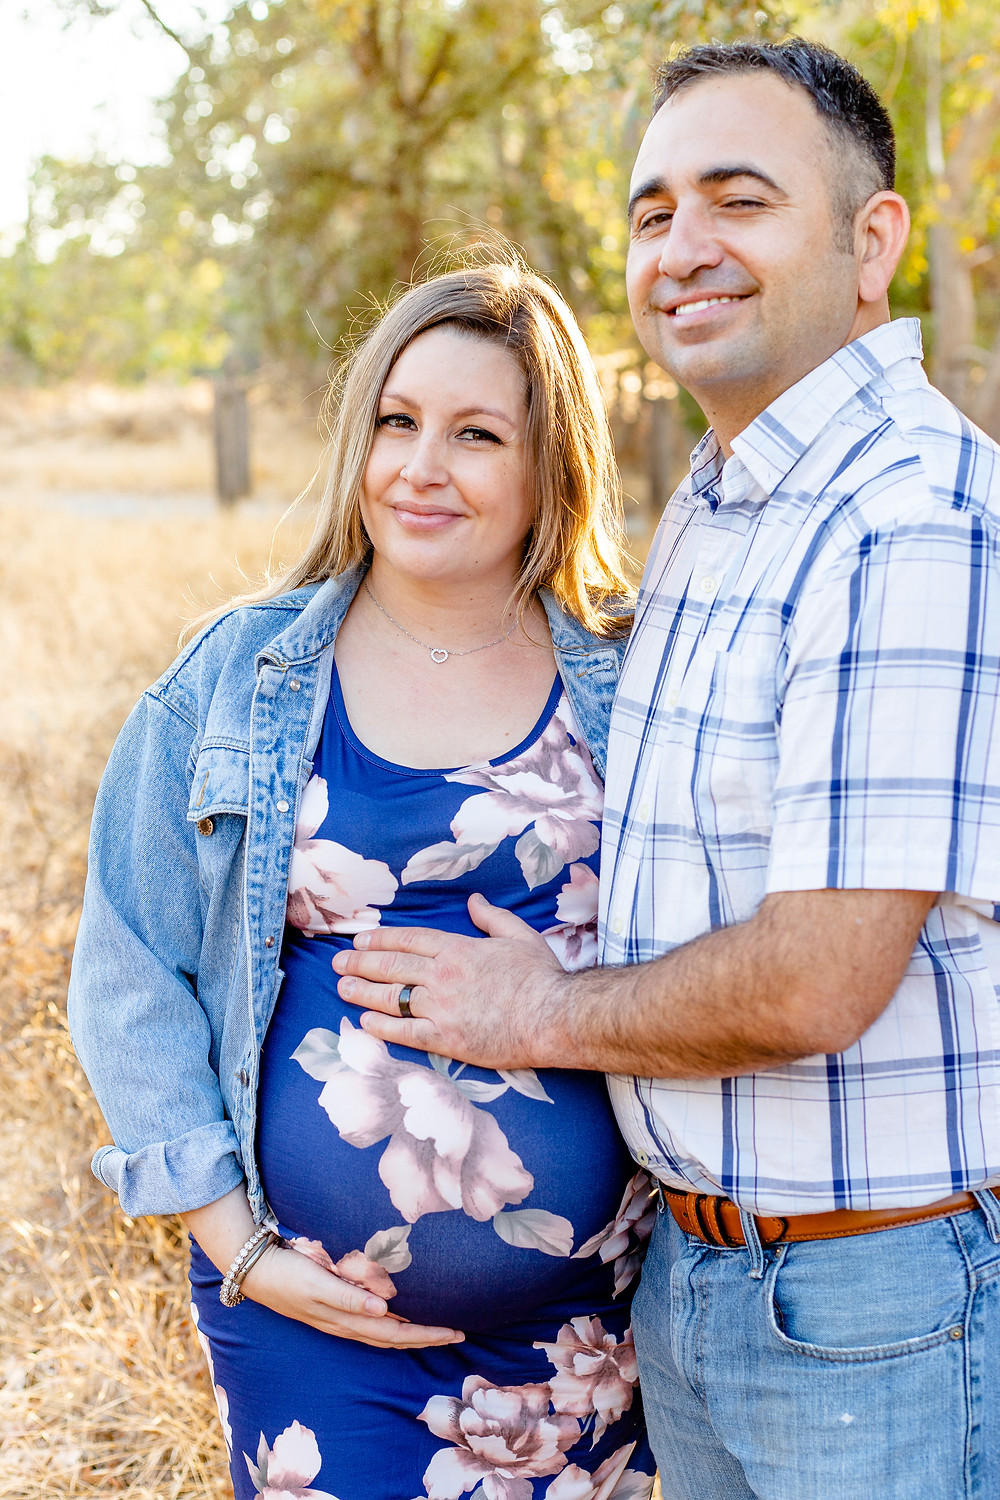 Lifestyle session by Central Valley maternity photographer Ashley Norton.